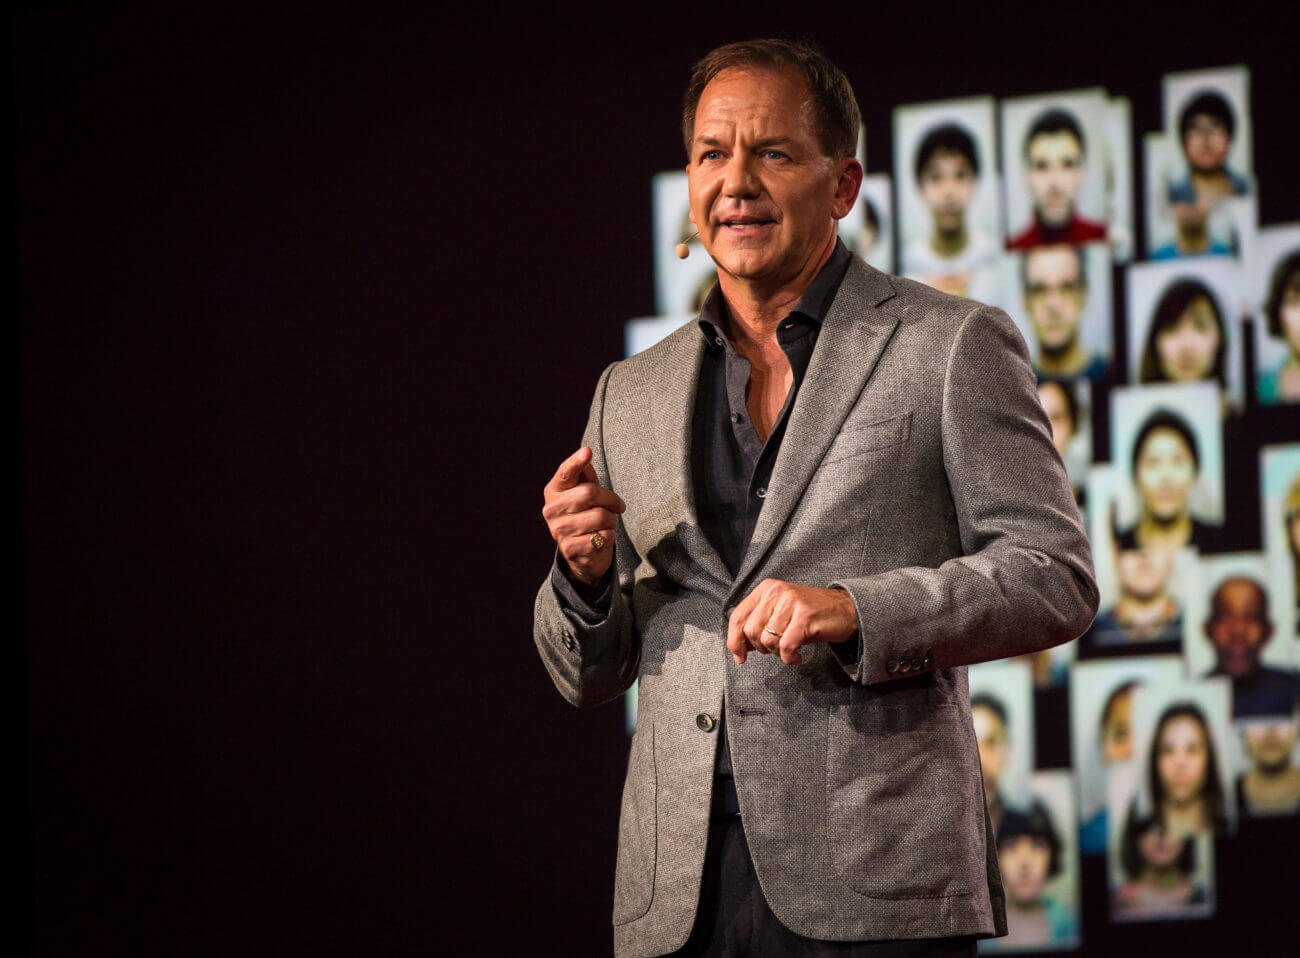 Billionaire Paul Tudor Jones Wants To Acquire His Fable Straight On Bitcoin